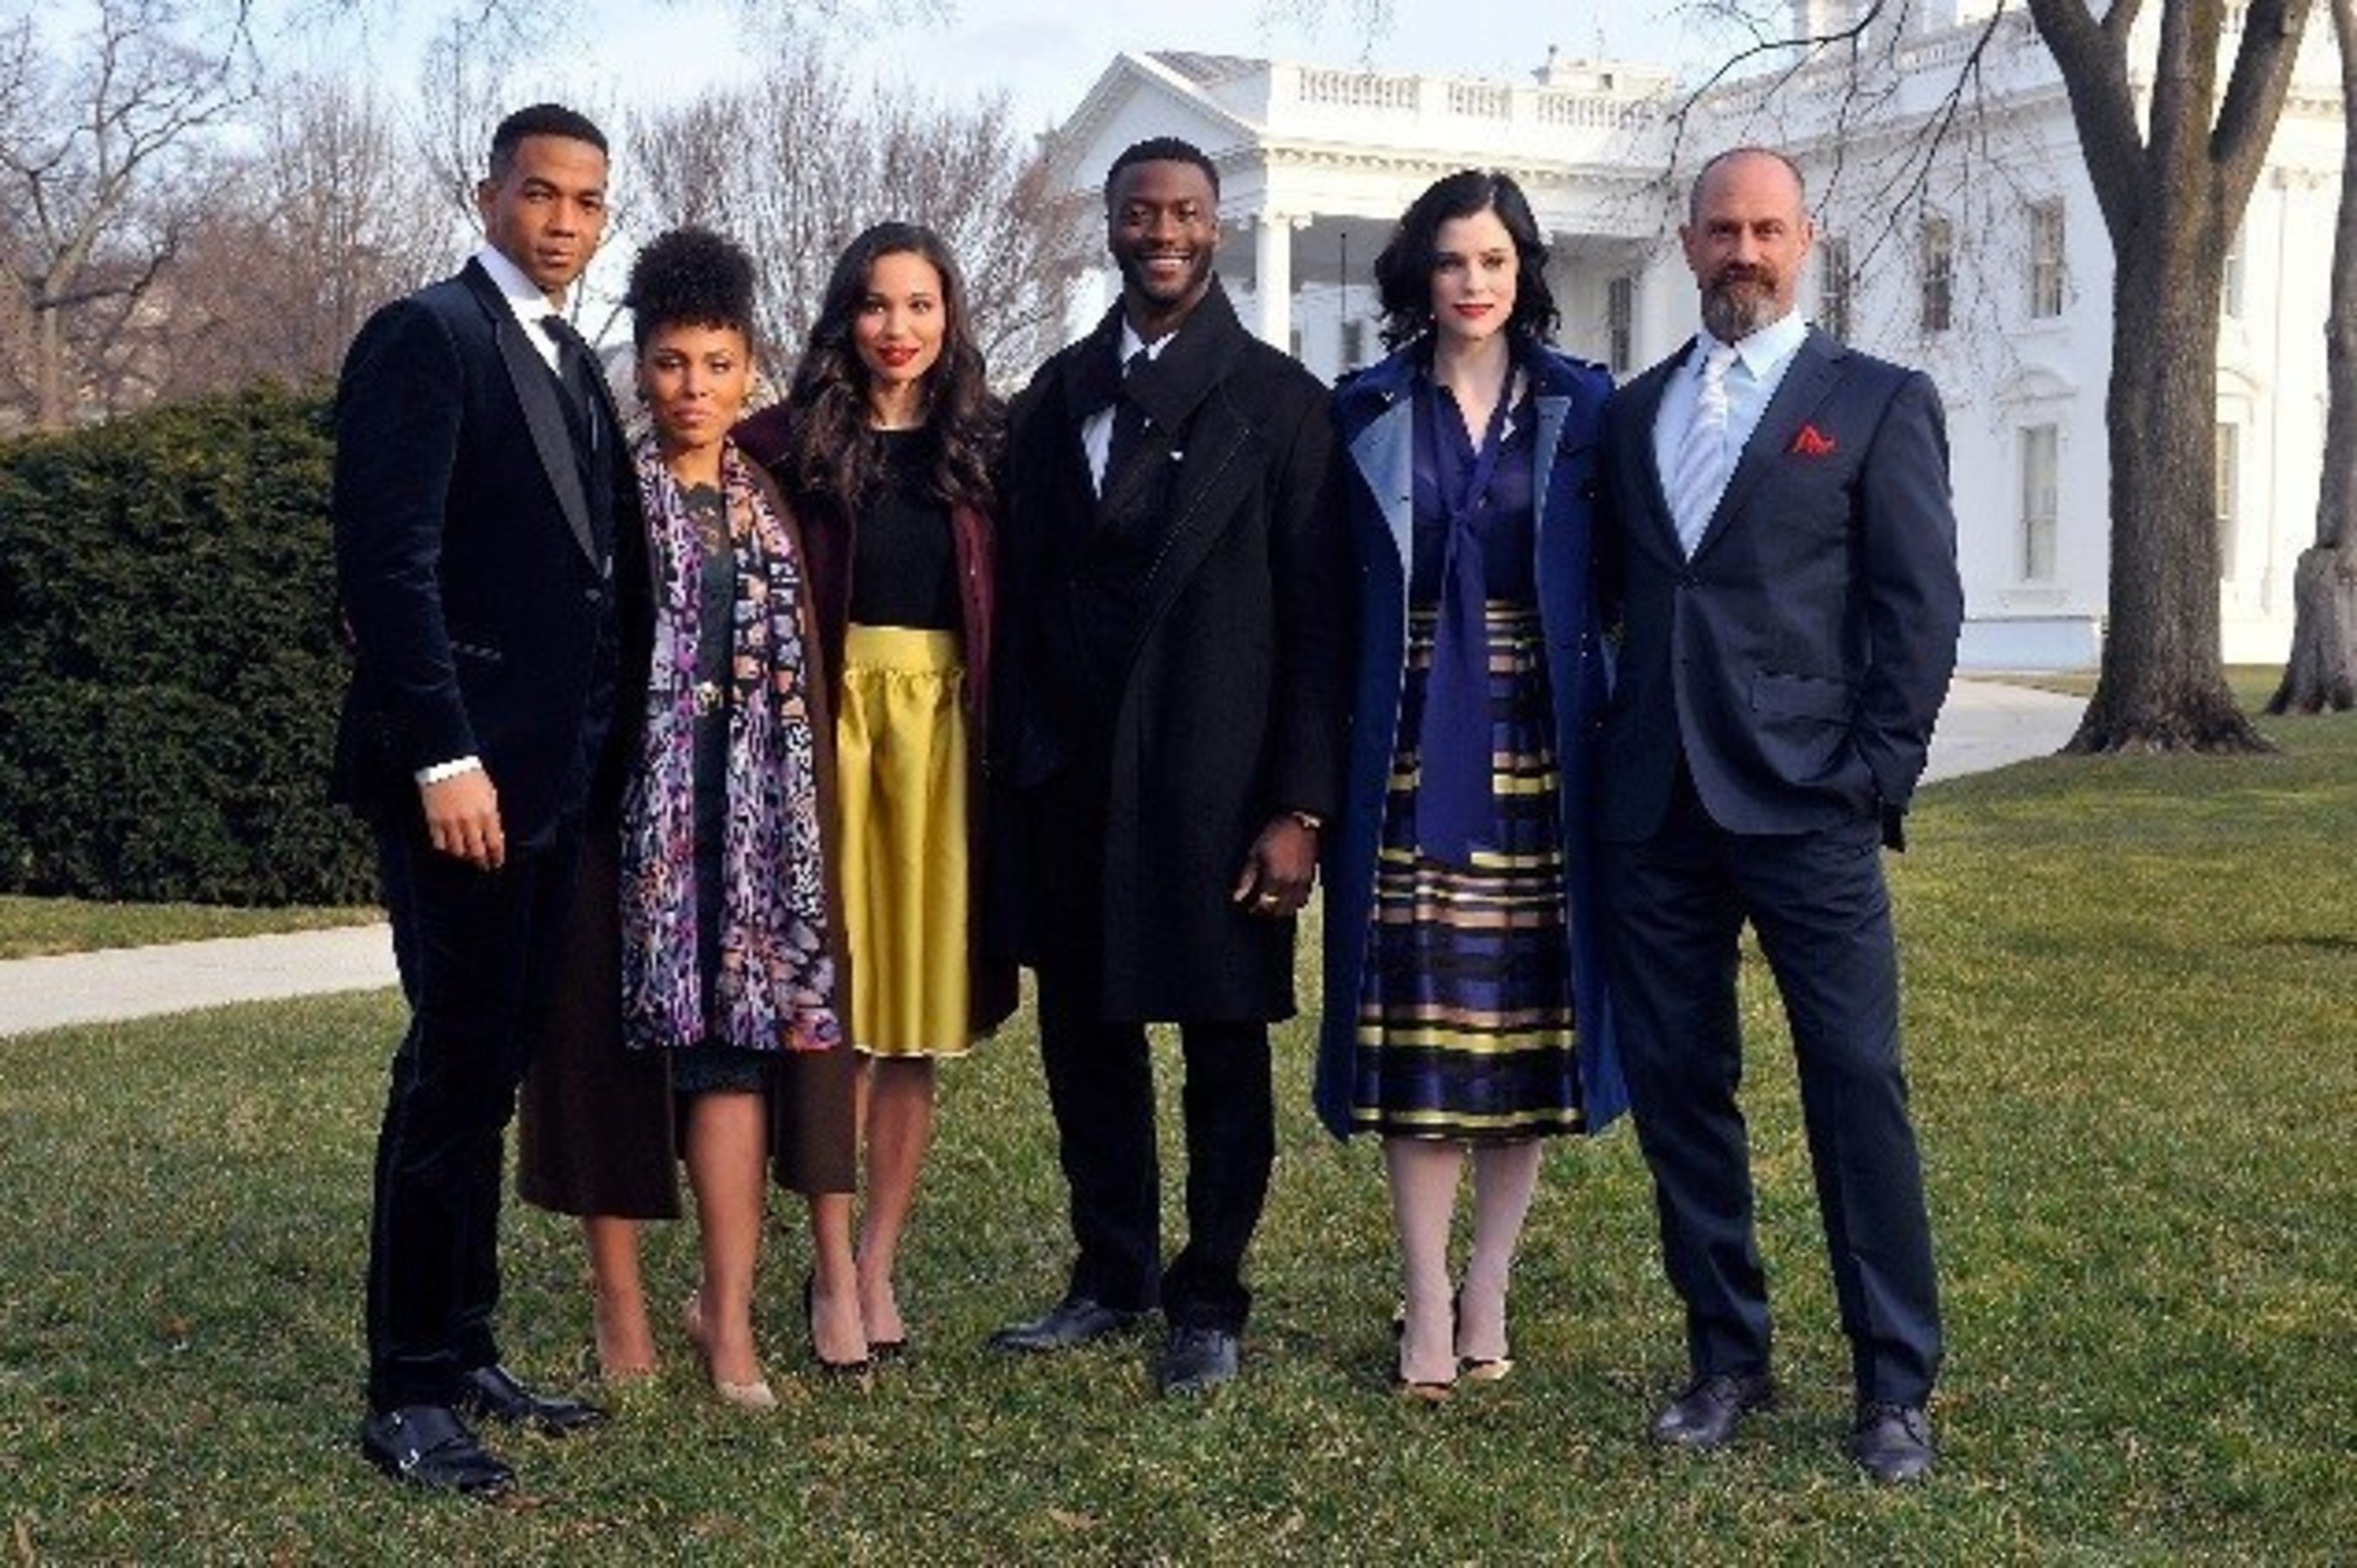 WGN America's 'Underground' Celebrated At The White House During Black History Month Event